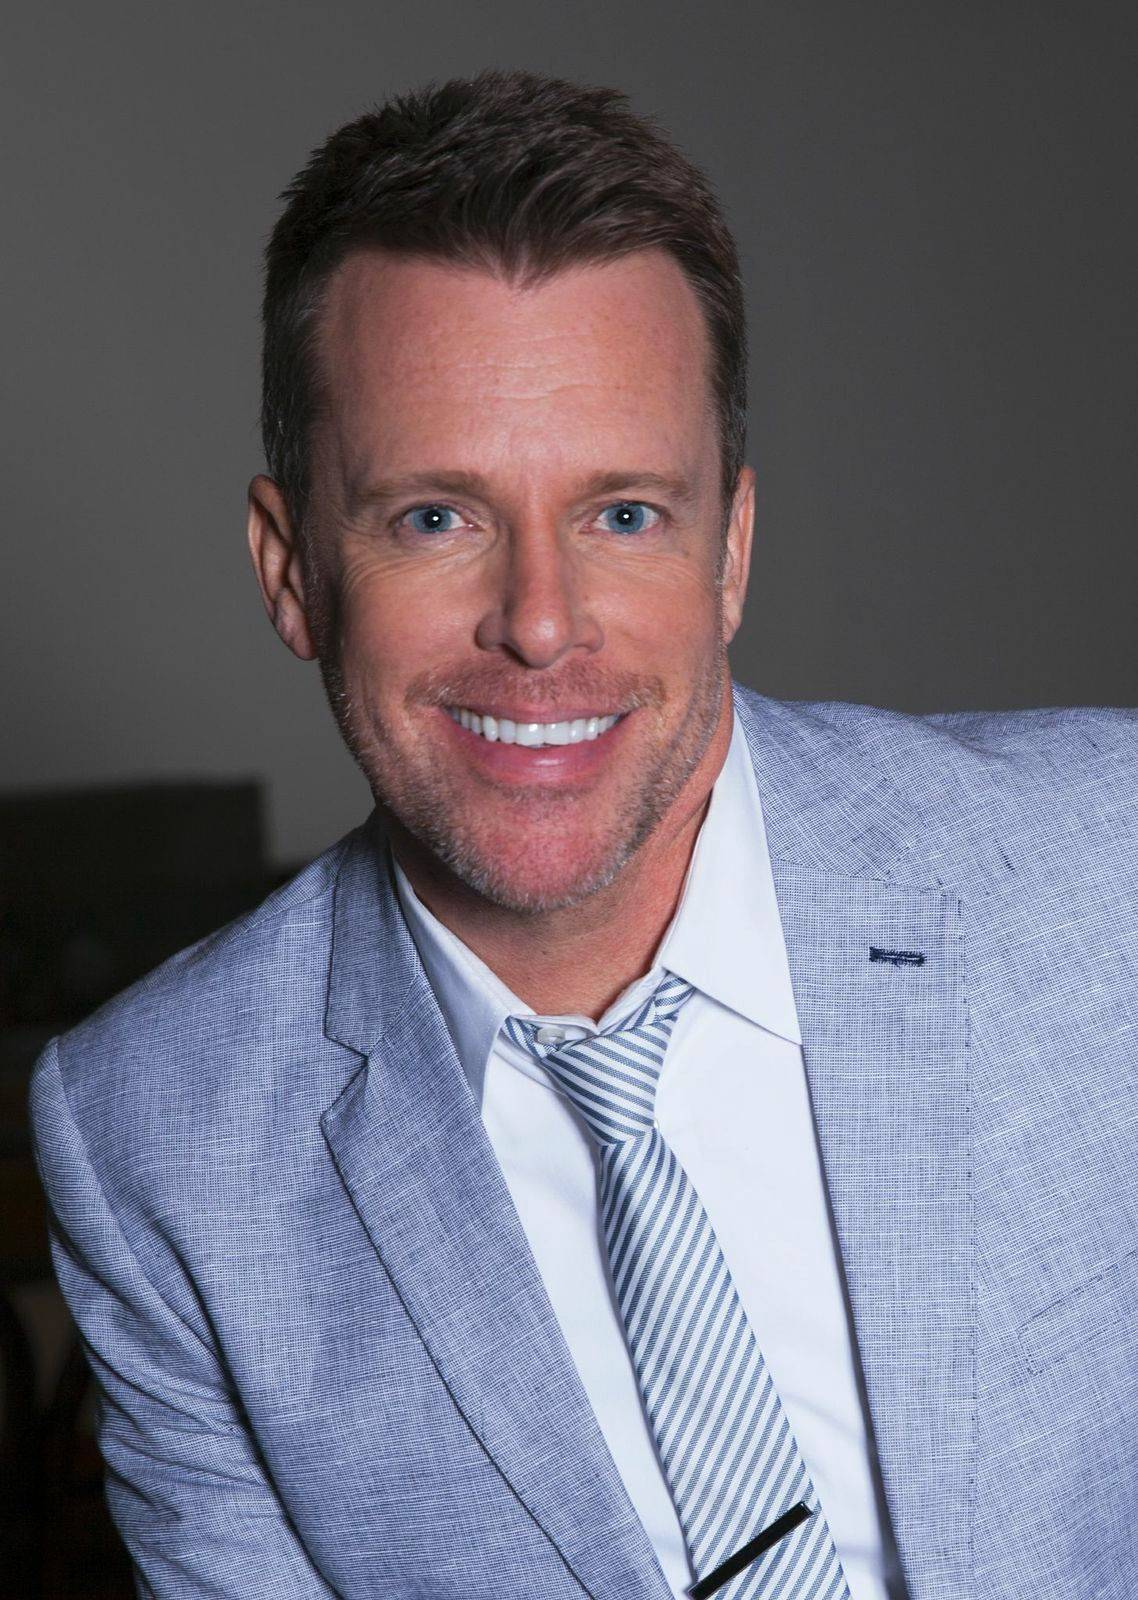 Comedian Chris Franjola performs at Zanies in Chicago, Rosemont and St. Charles.